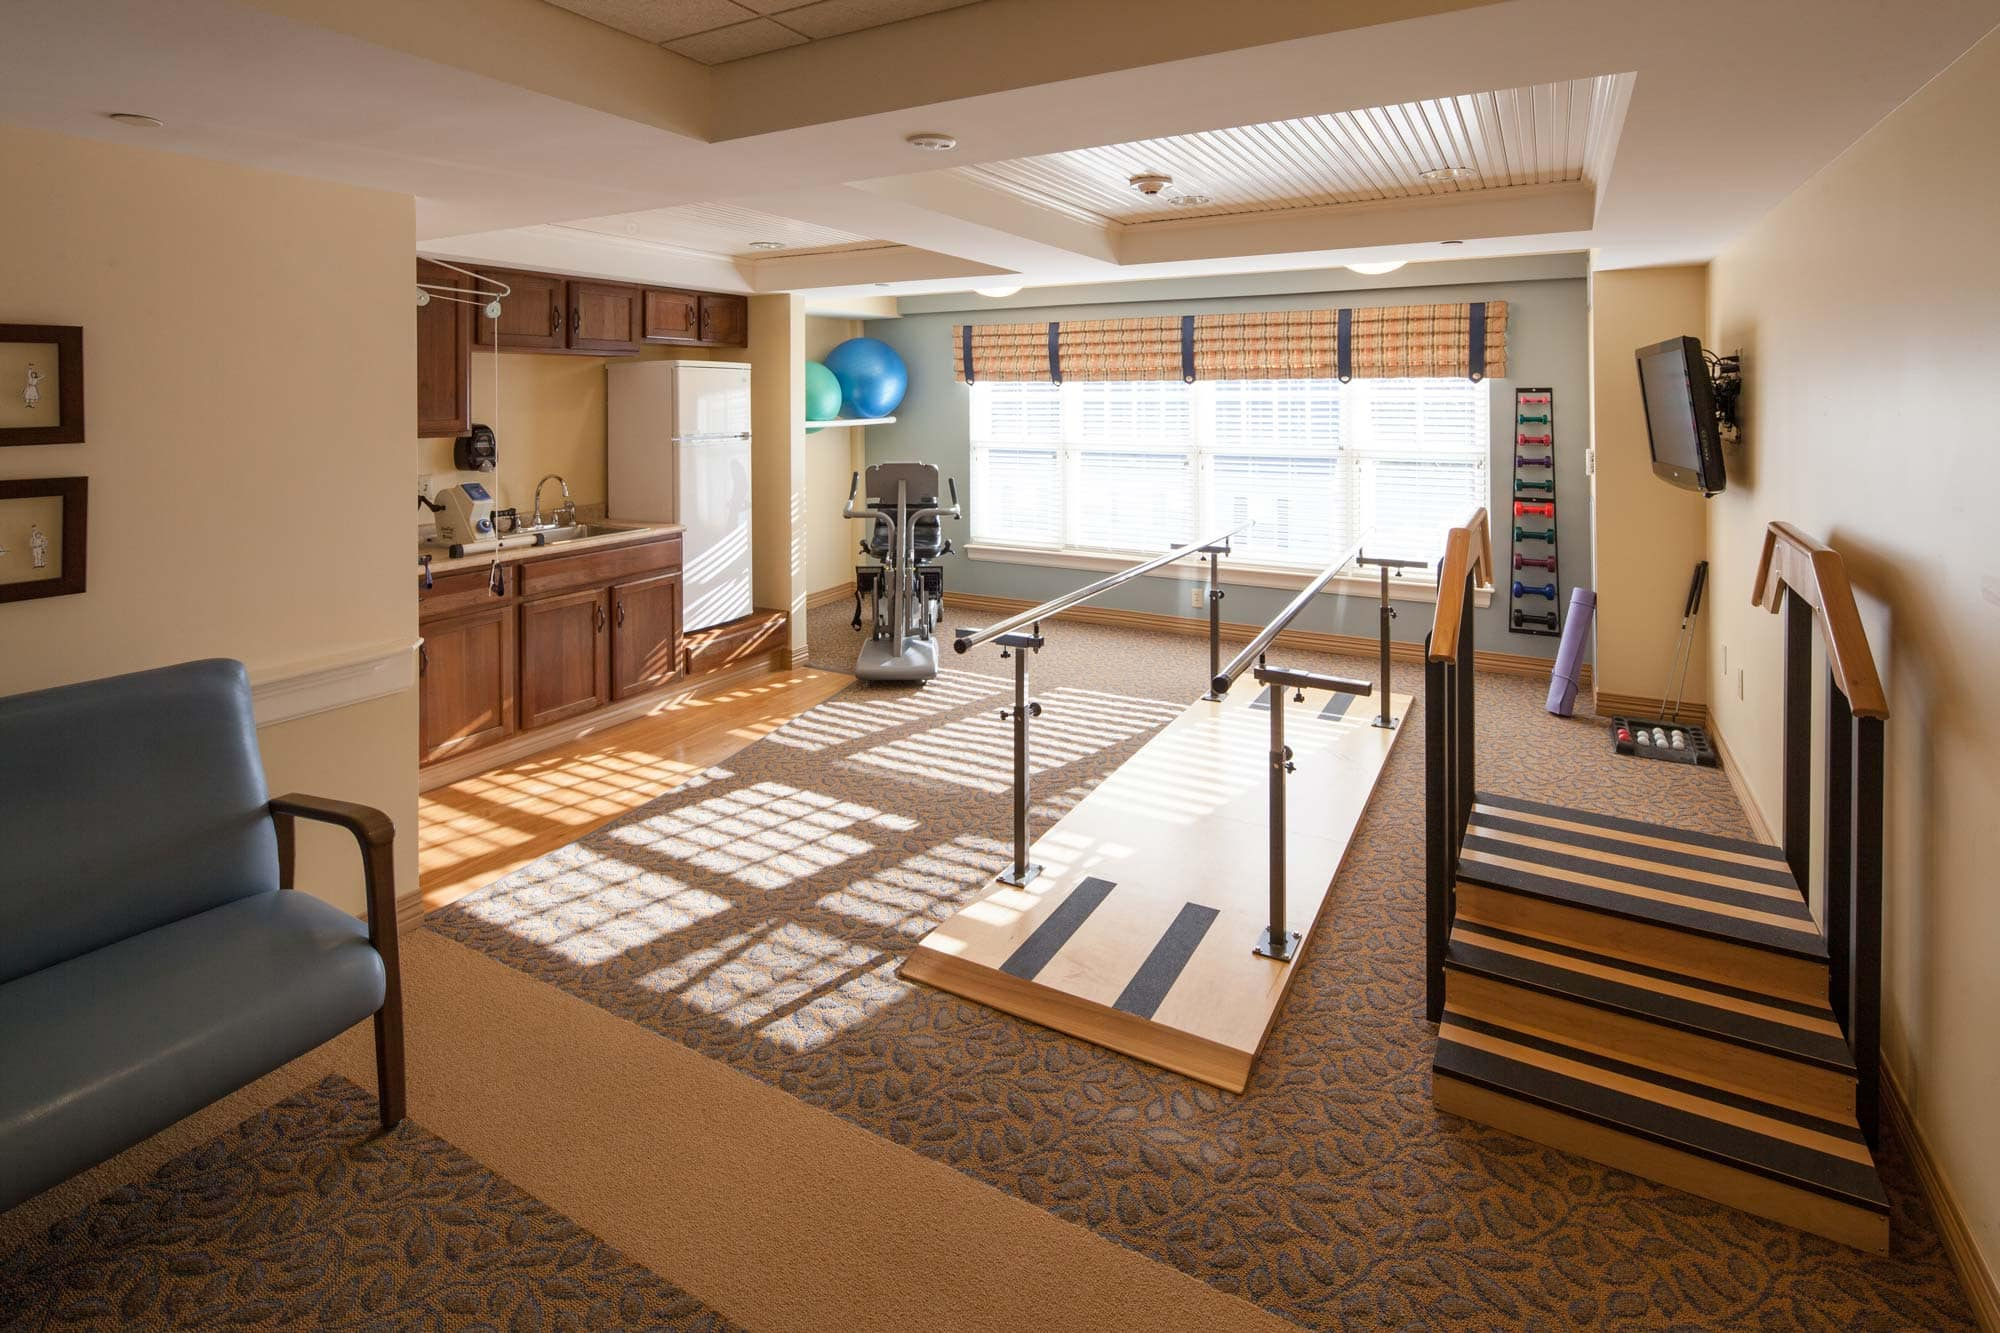 A look inside the therapeutic wellness center